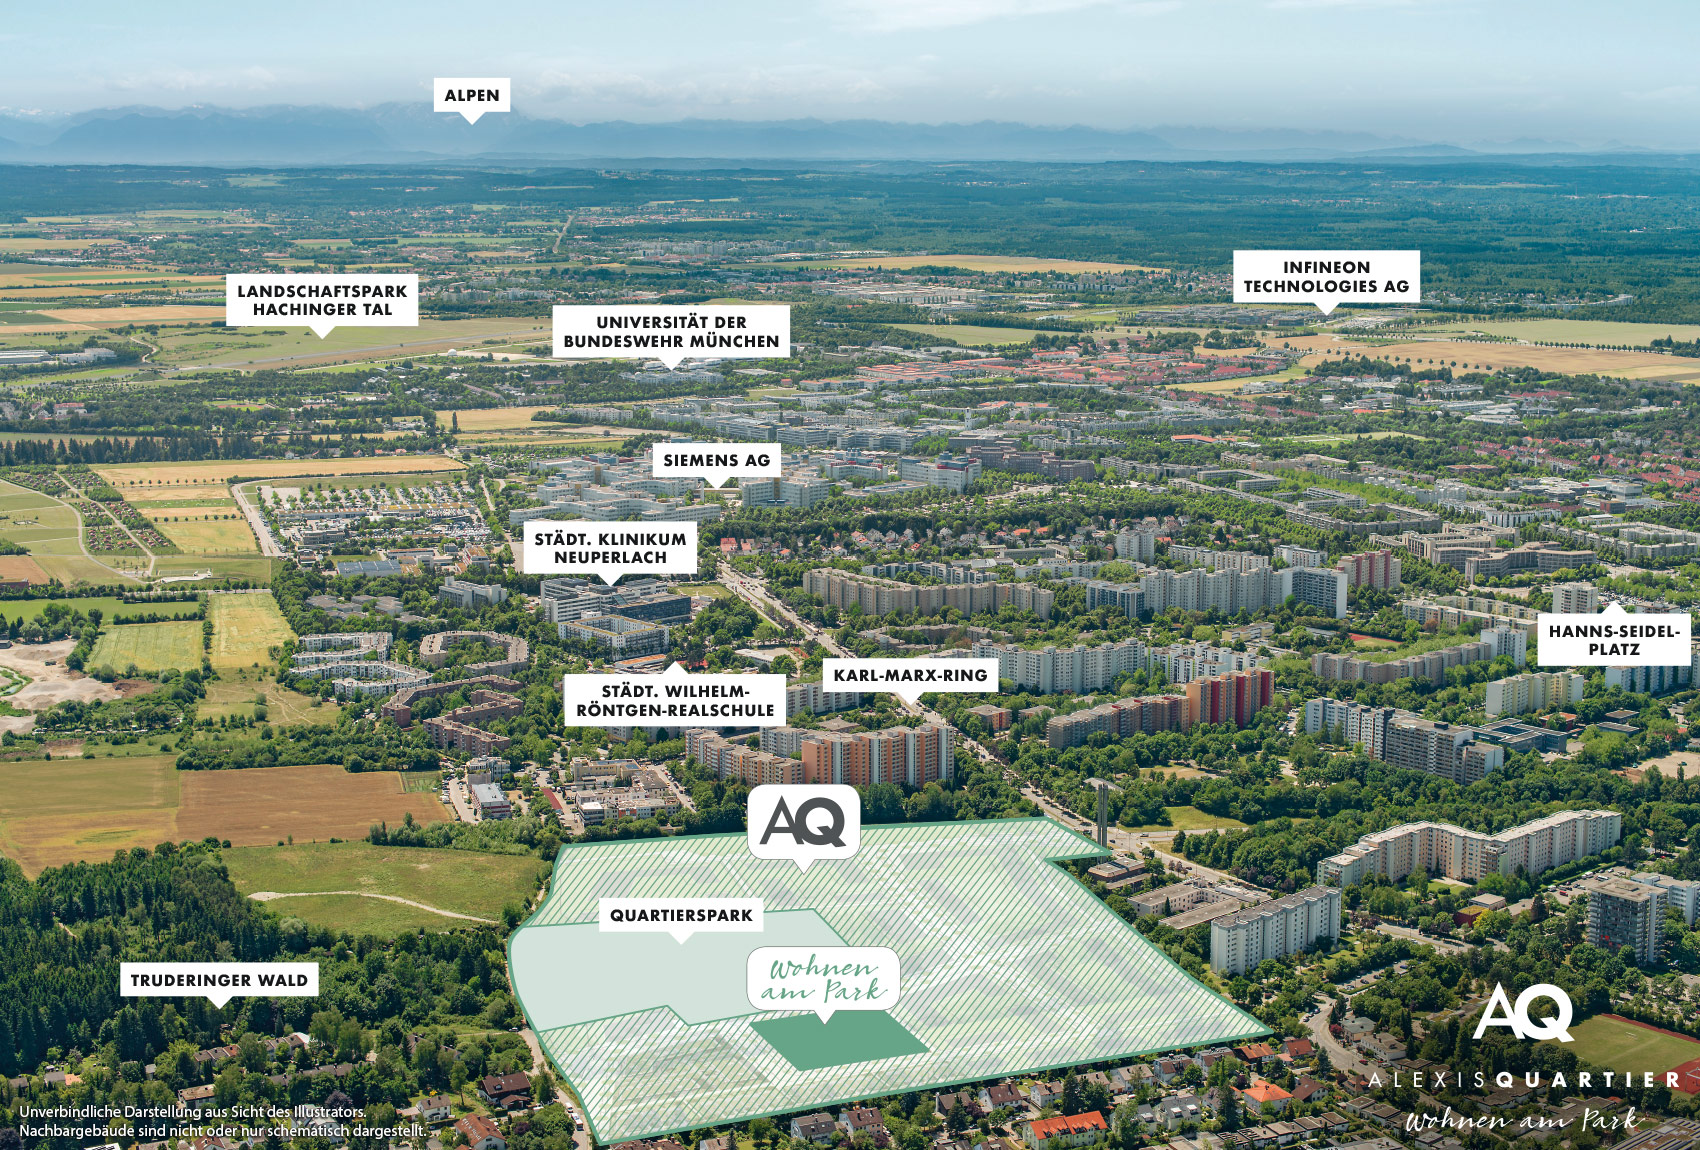 Property Alexisquartier - Wohnen am park - aerial photo